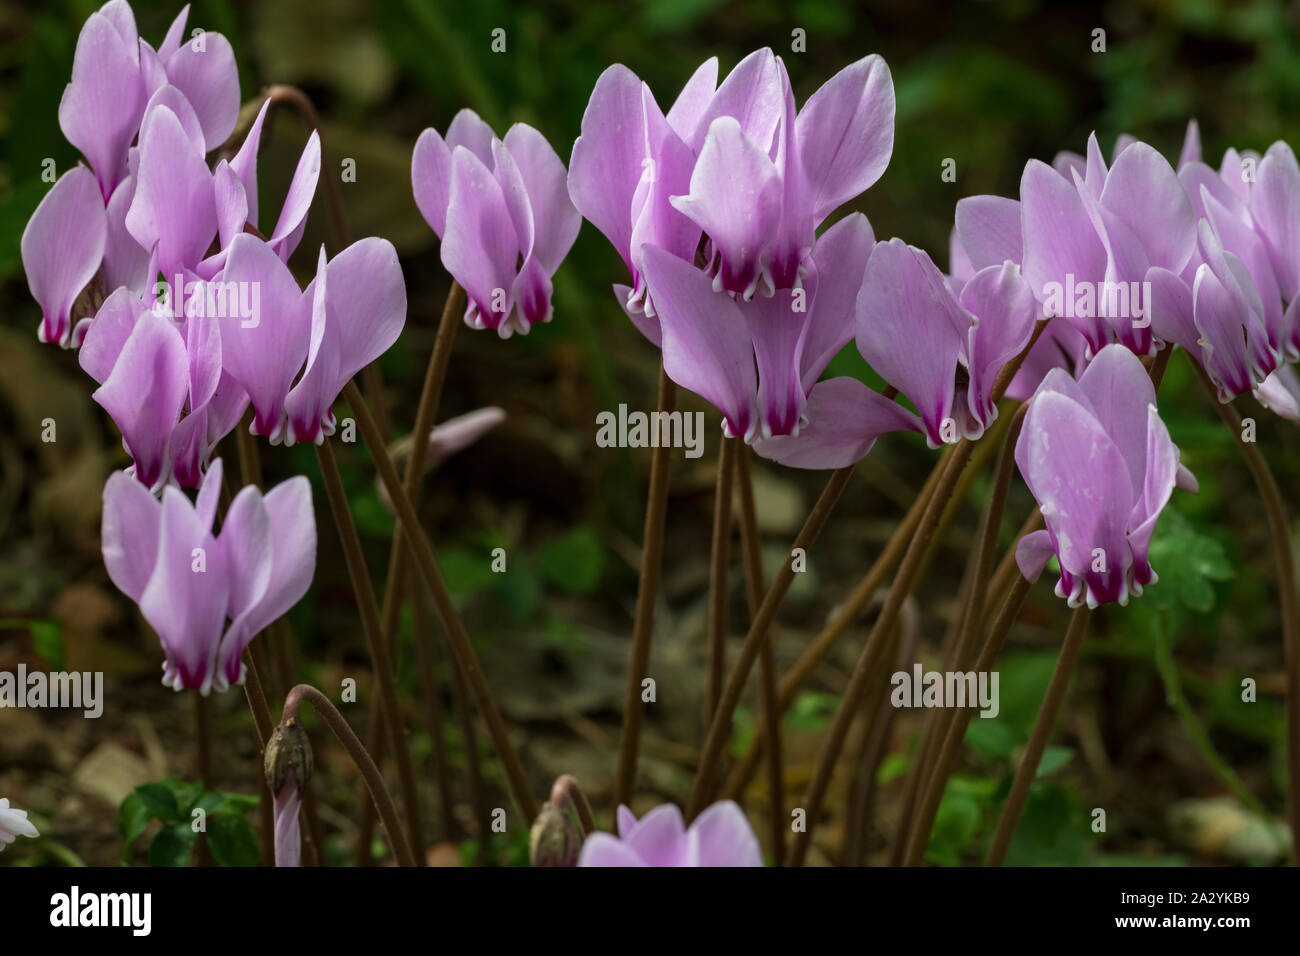 Ivy-leaved Sowbread (Cyclamen hederifolium, pink flowers Stock Photo